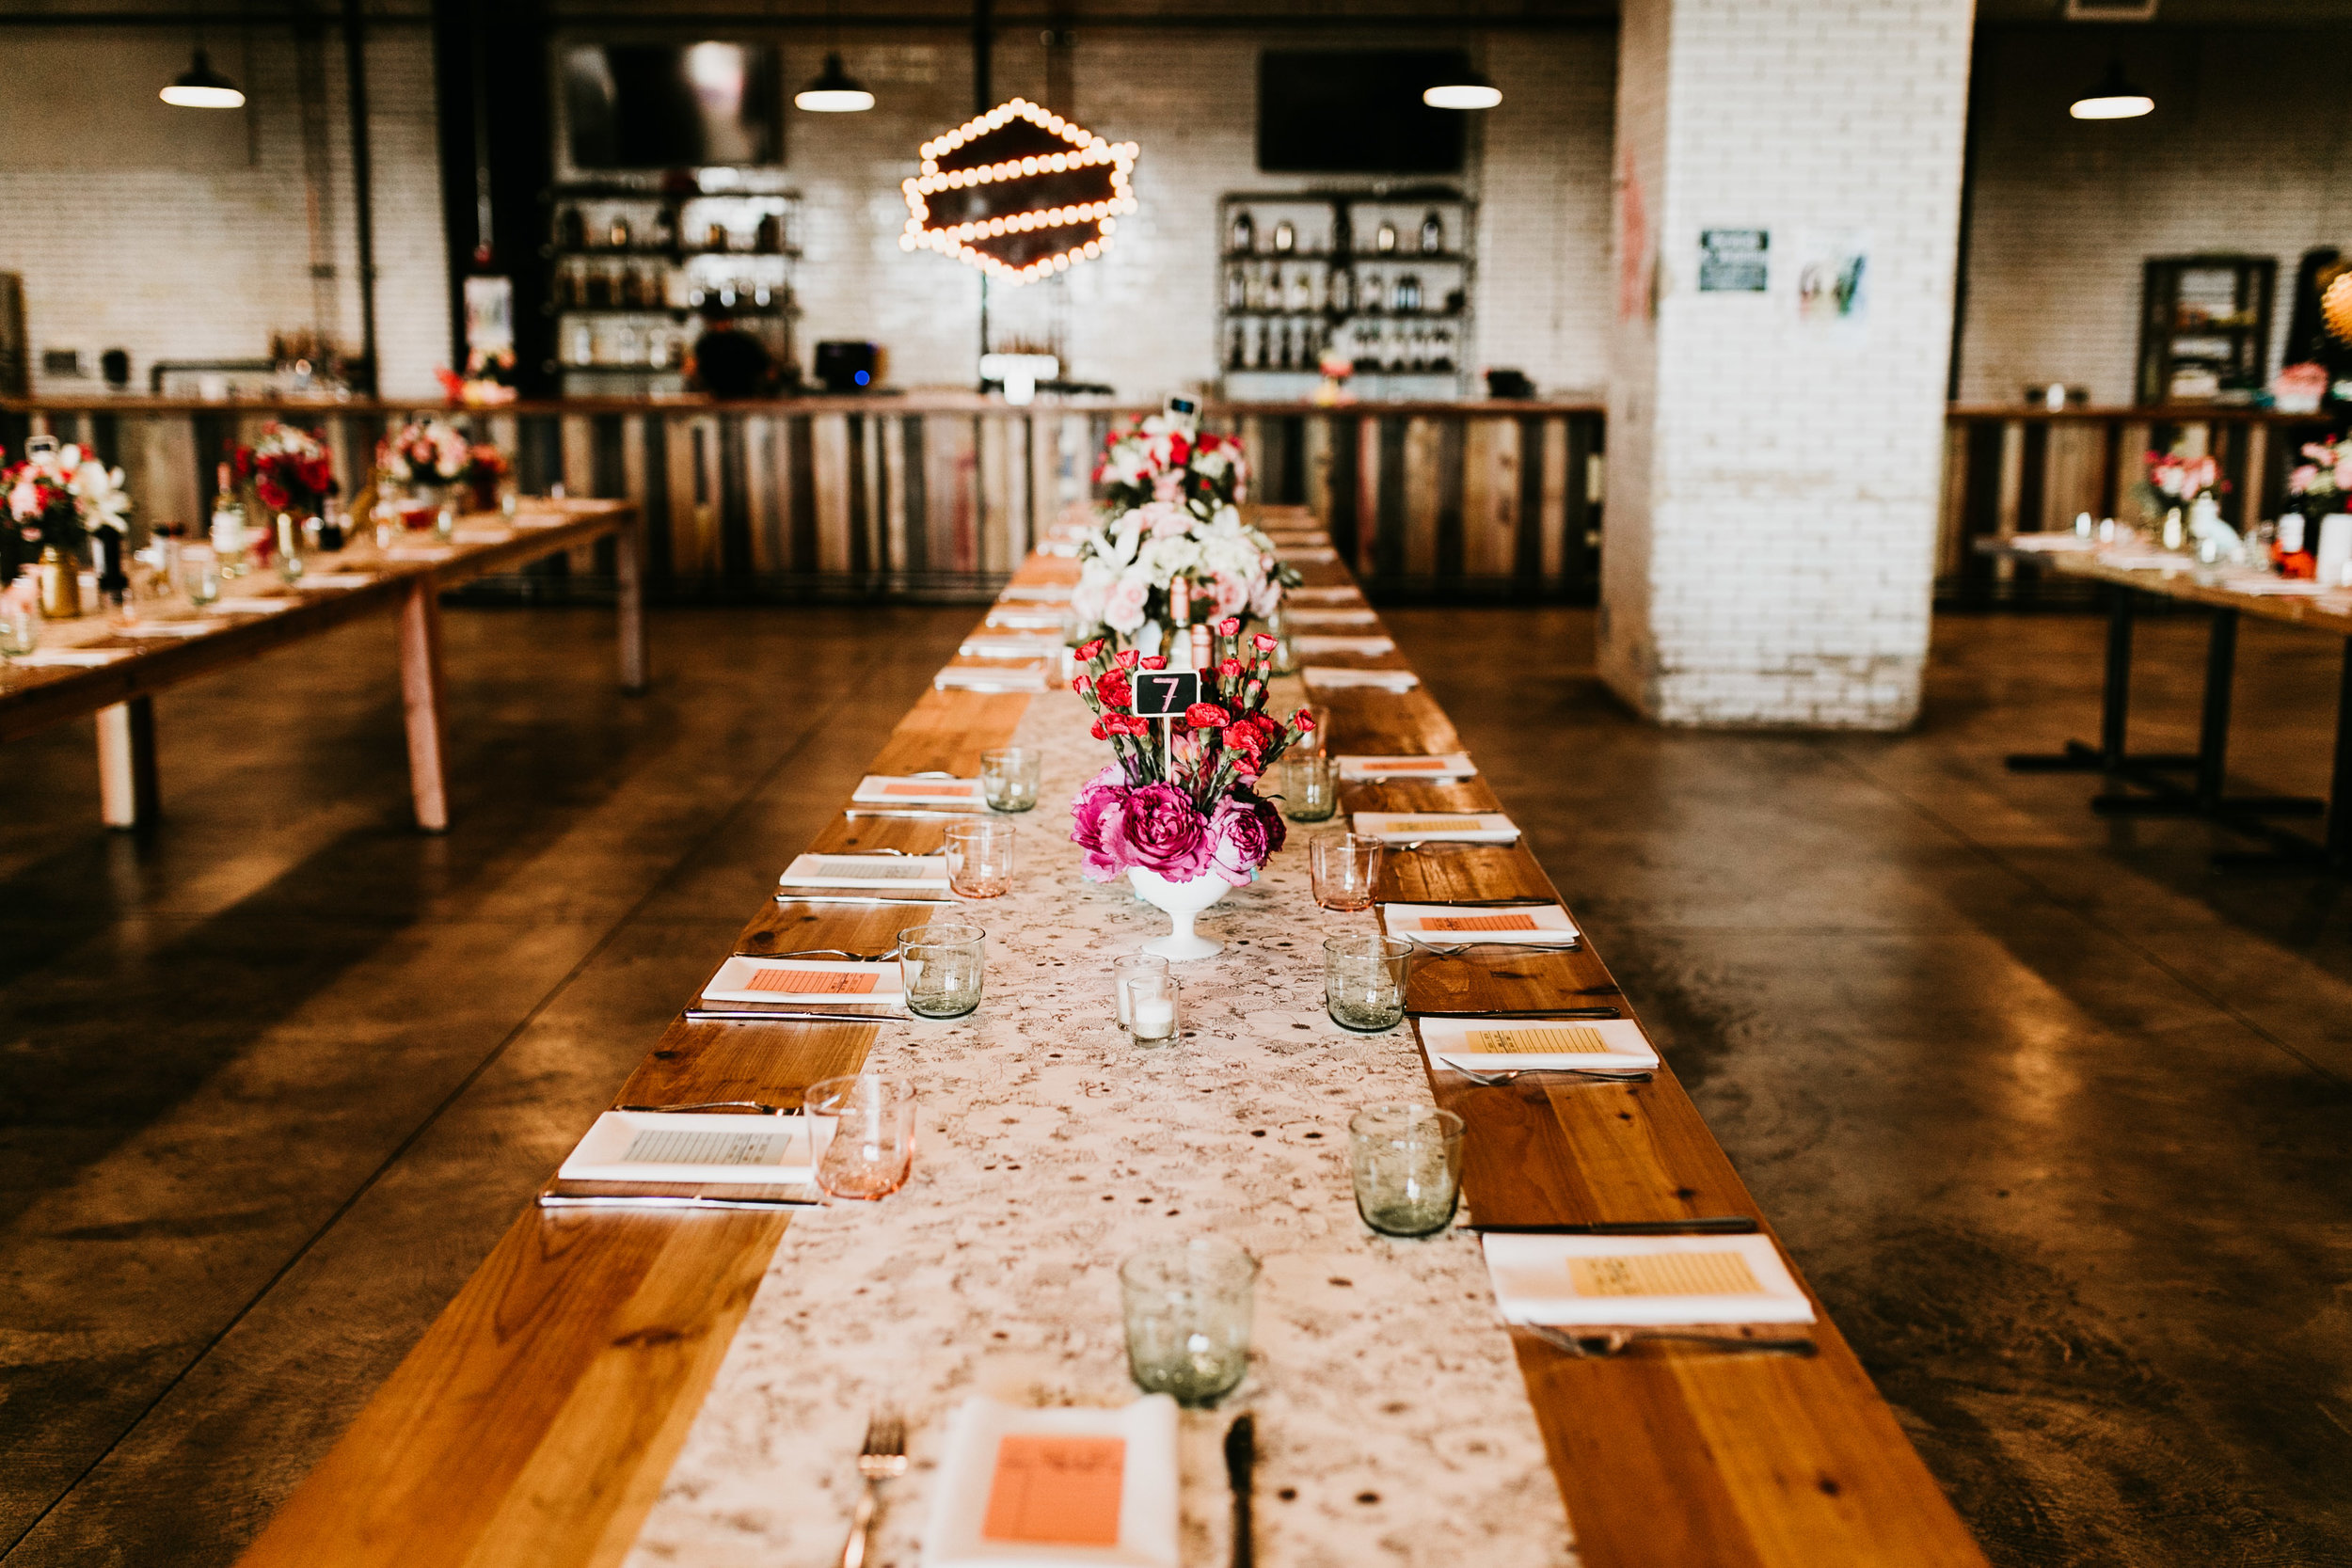 uprooted-traveler-how-to-have-a-vegan-wedding-tablescape-old-bakery-beer.jpg